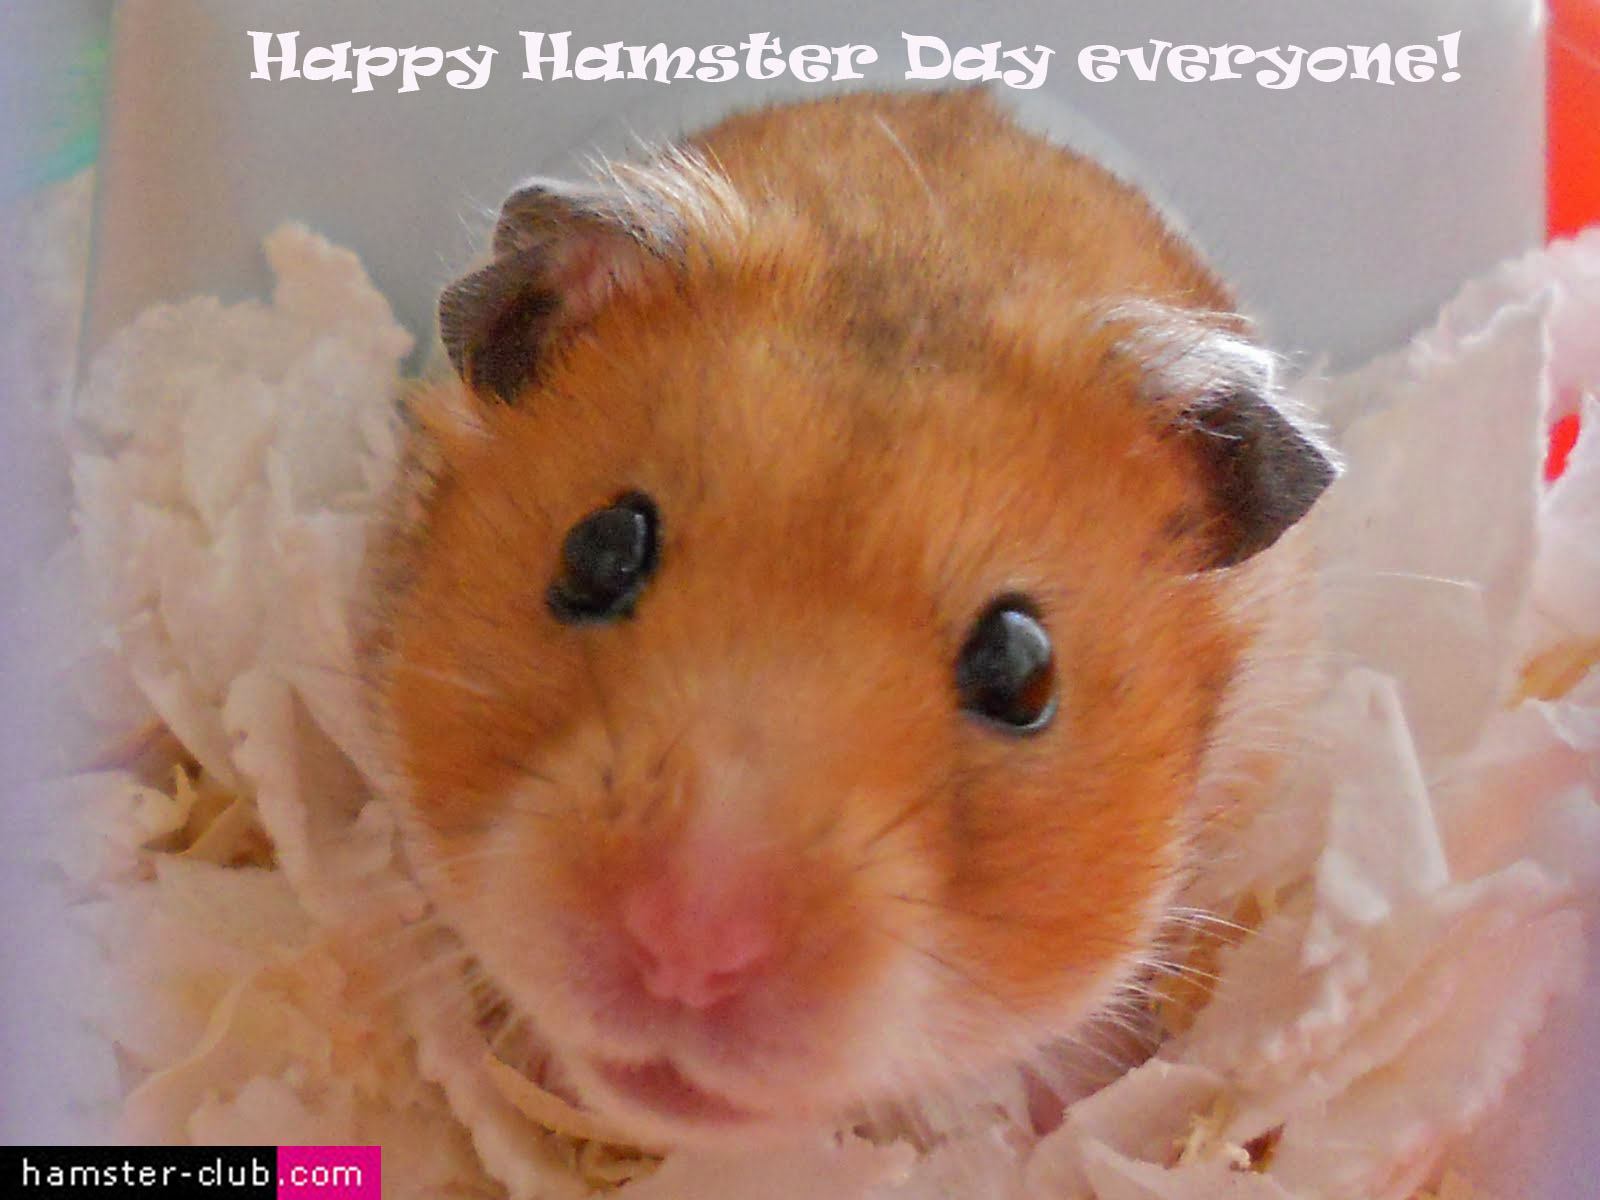 World Hamster Day